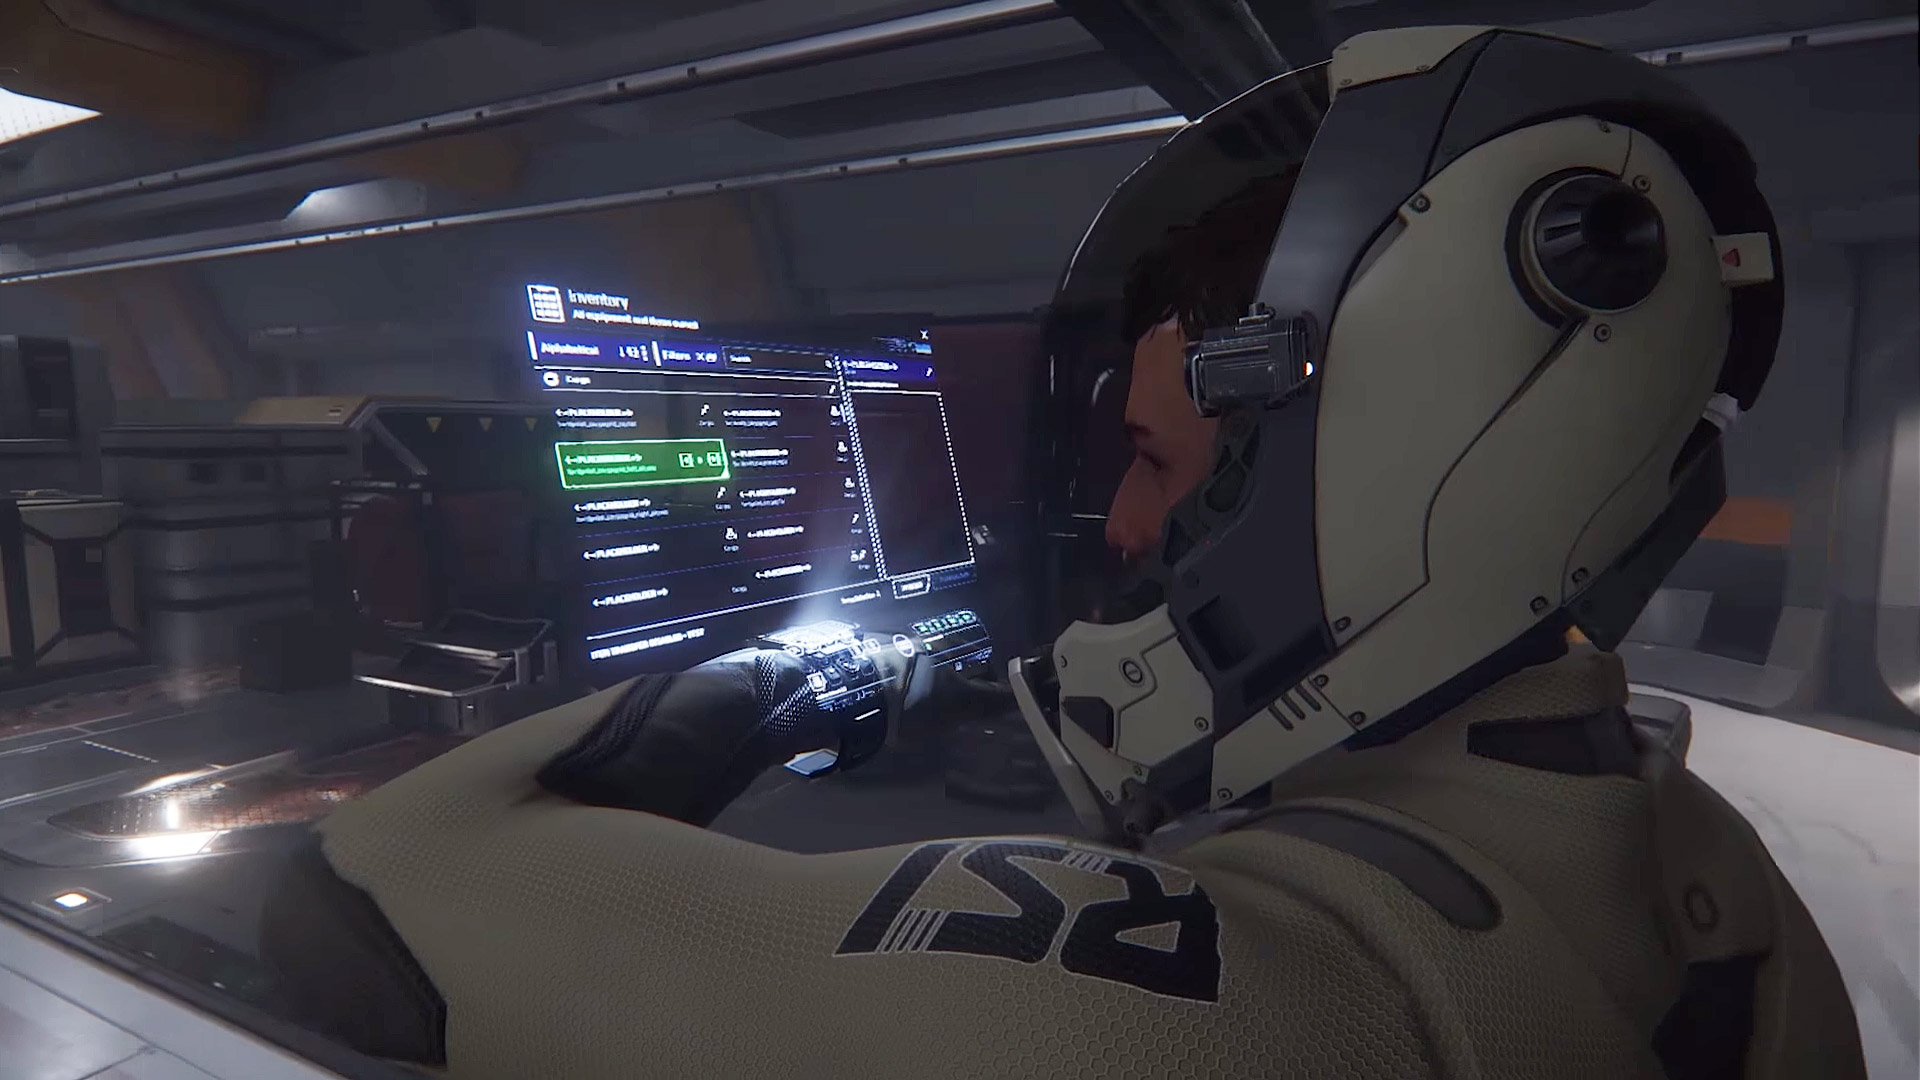 Star-Citizen-UI-Design-mobiglas